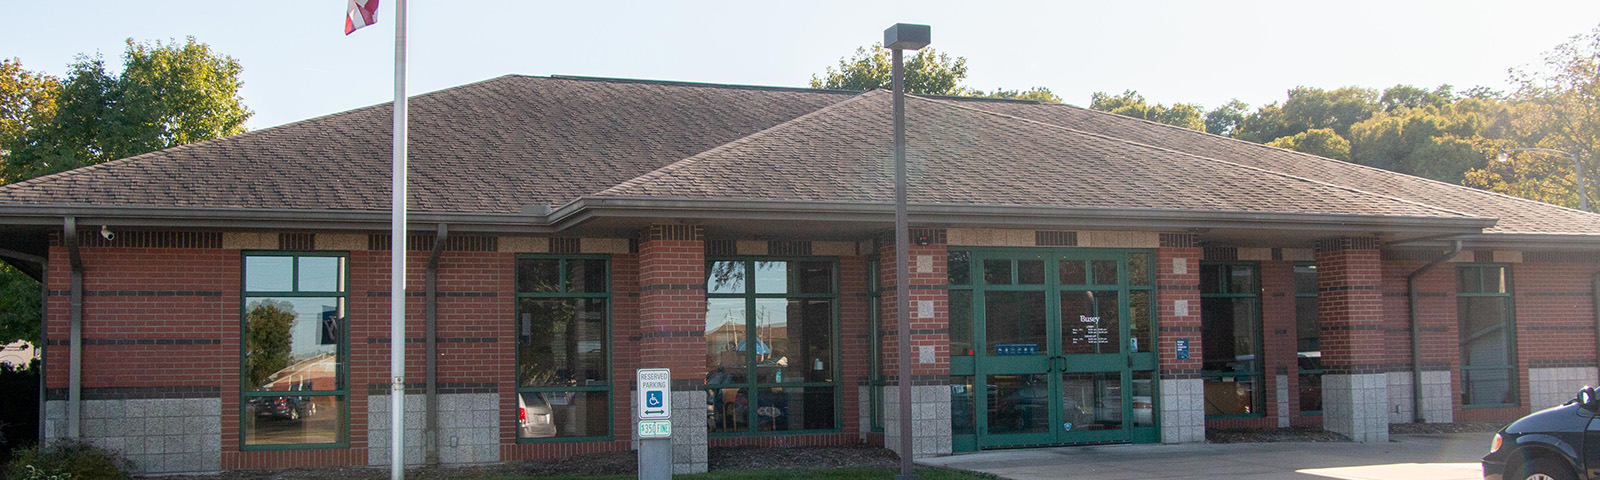 Busey Bank East Peoria location